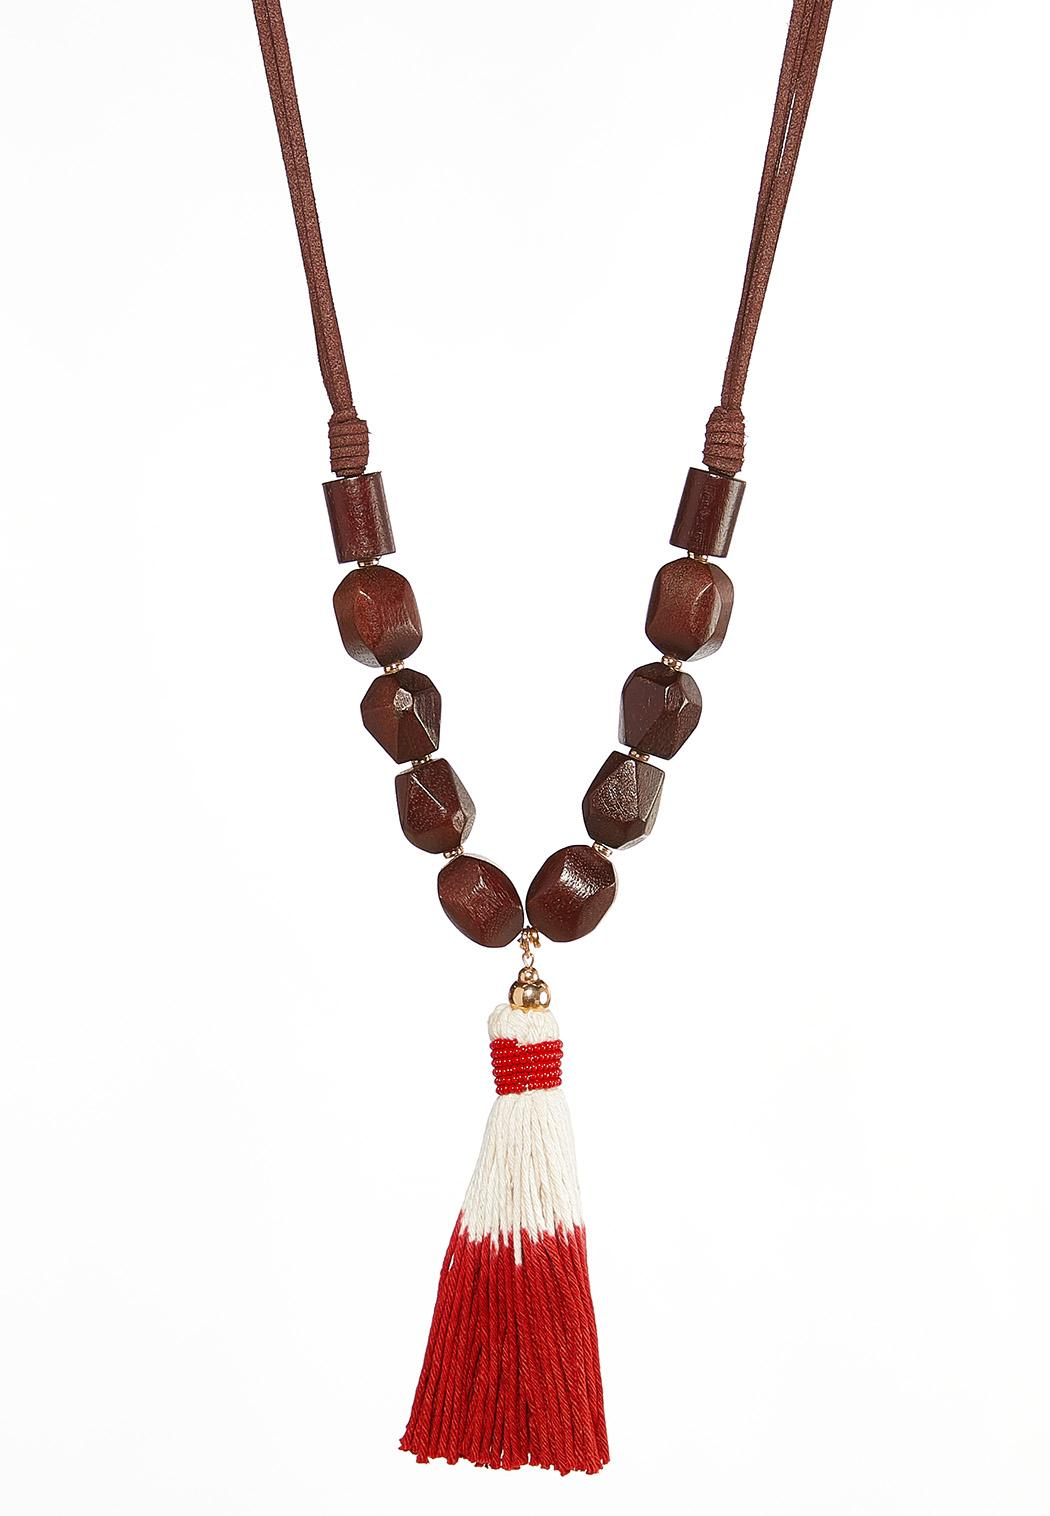 Wooden Dyed Tassel Necklace